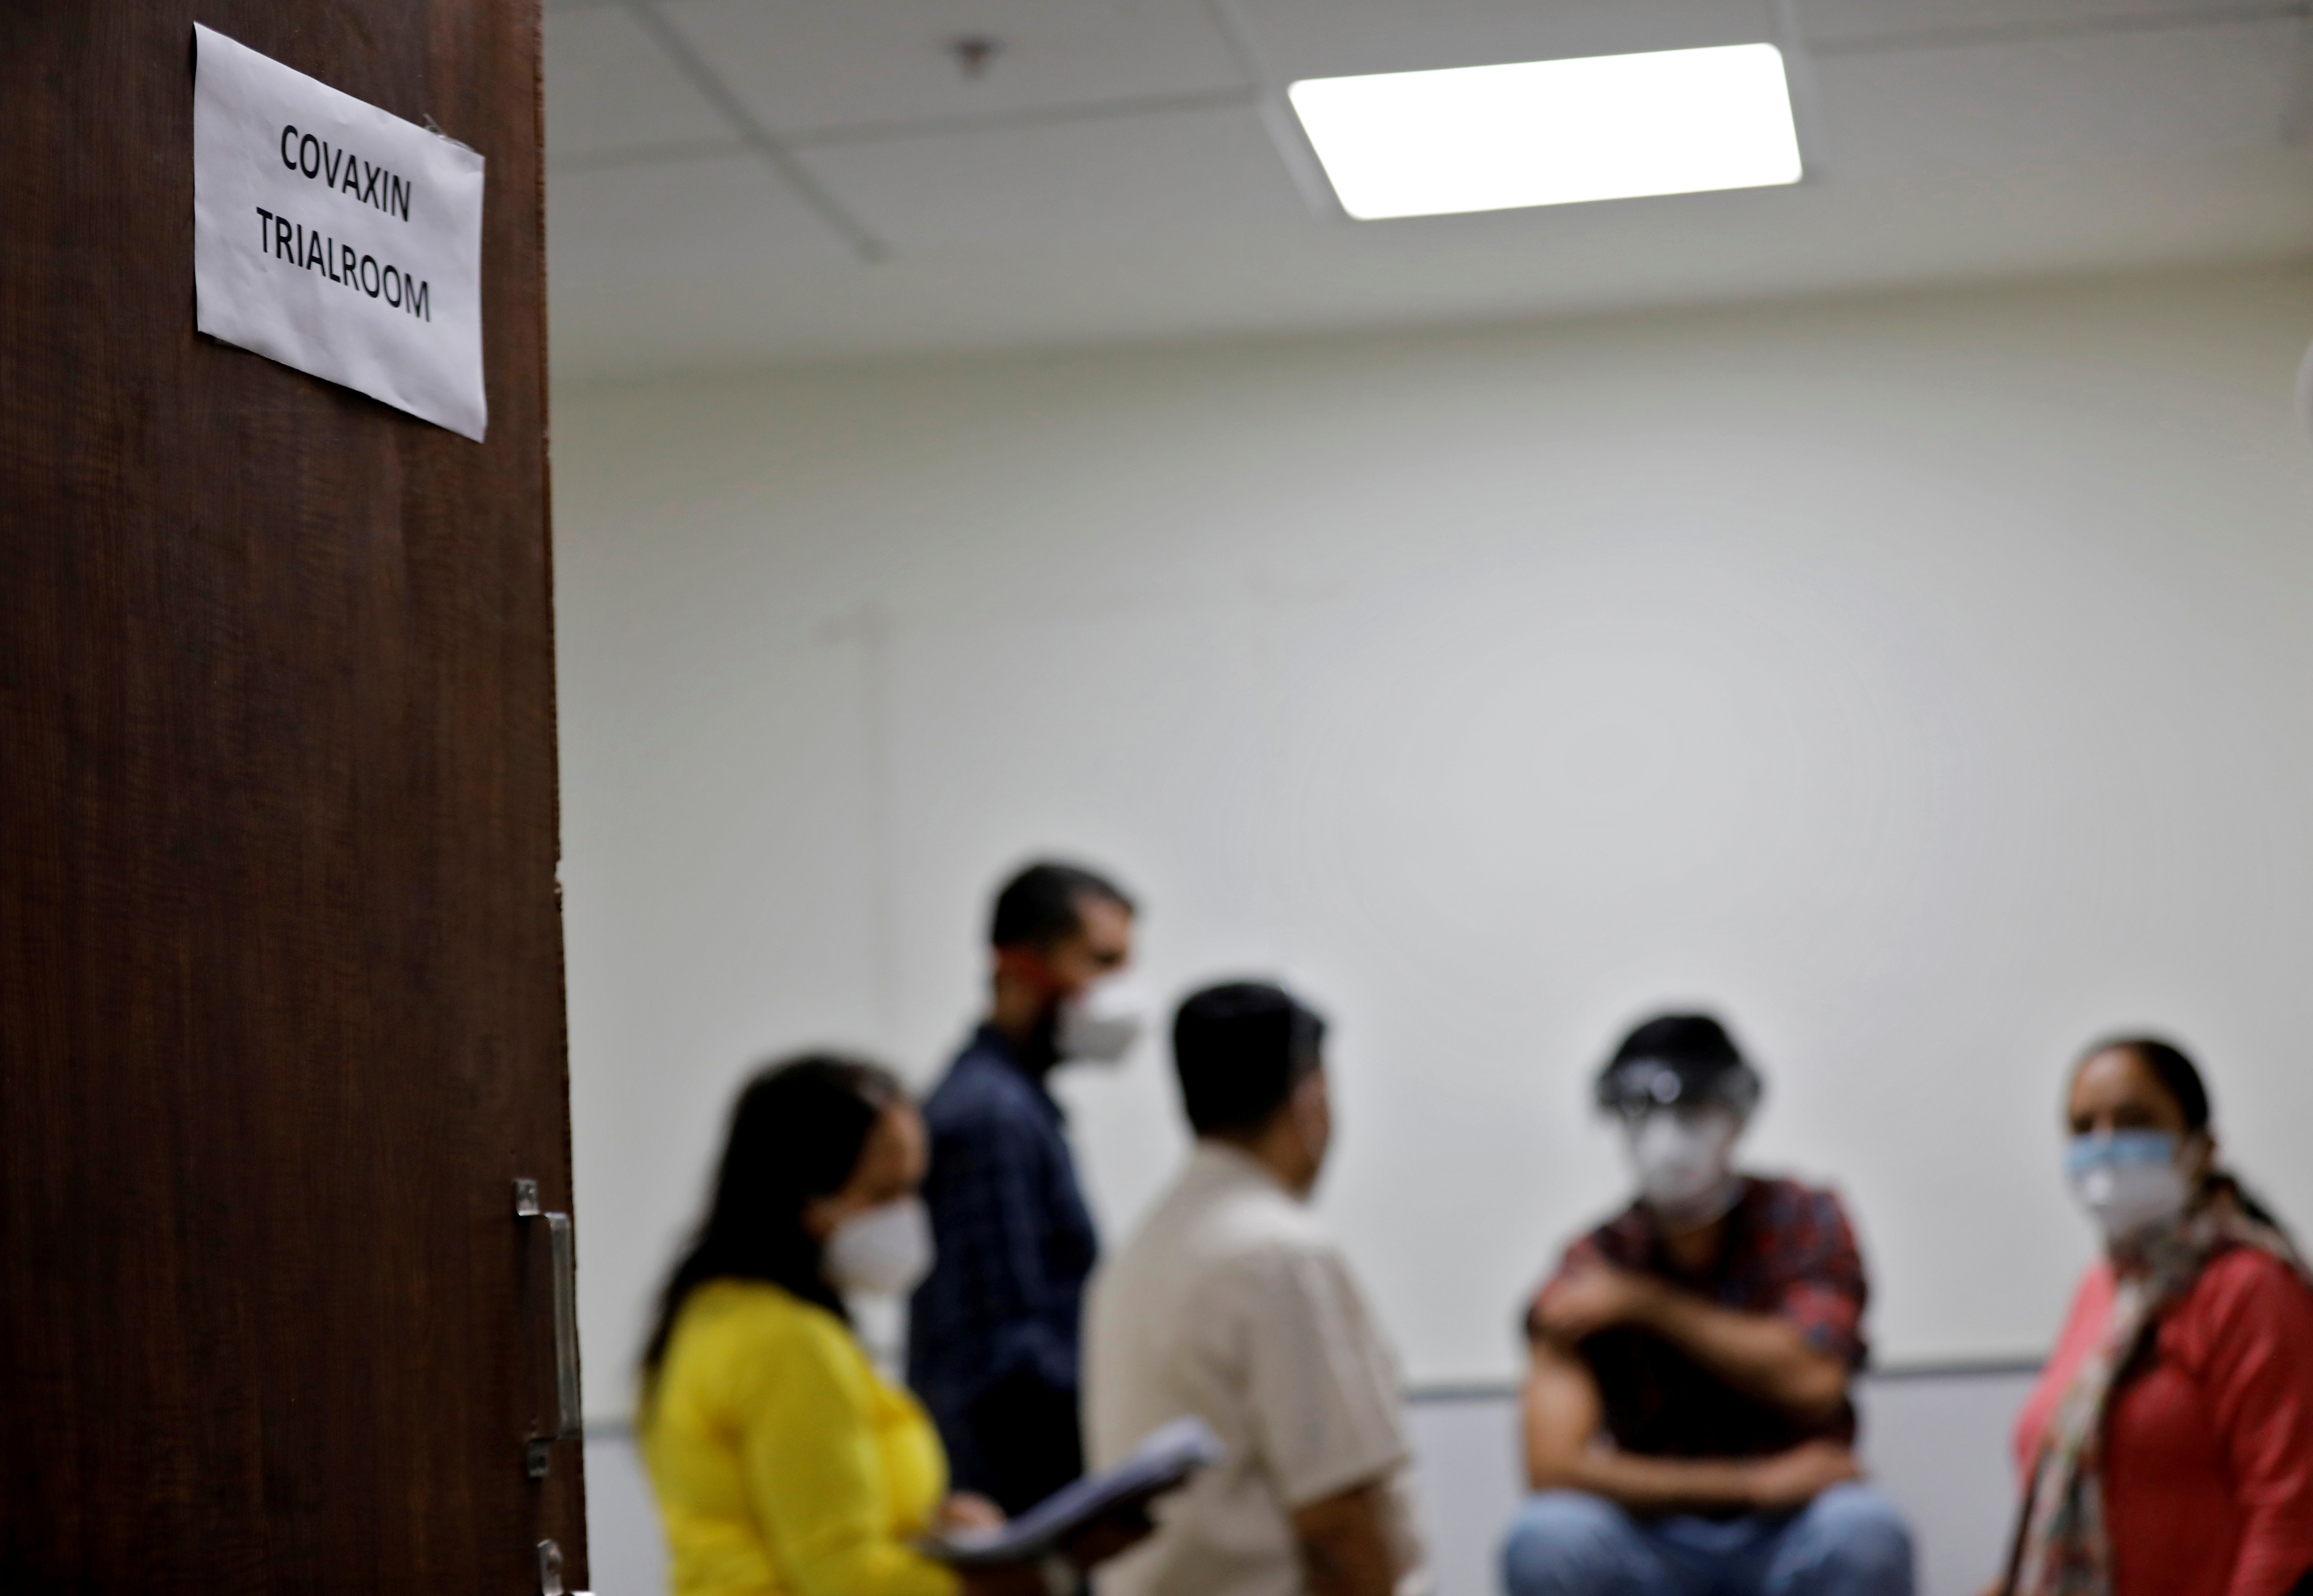 Medics prepare to administer COVAXIN, an Indian government-backed experimental COVID-19 vaccine, to a health worker during its trials, at the Gujarat Medical Education & Research Society in Ahmedabad, India, November 26, 2020. REUTERS/Amit Dave/File Photo